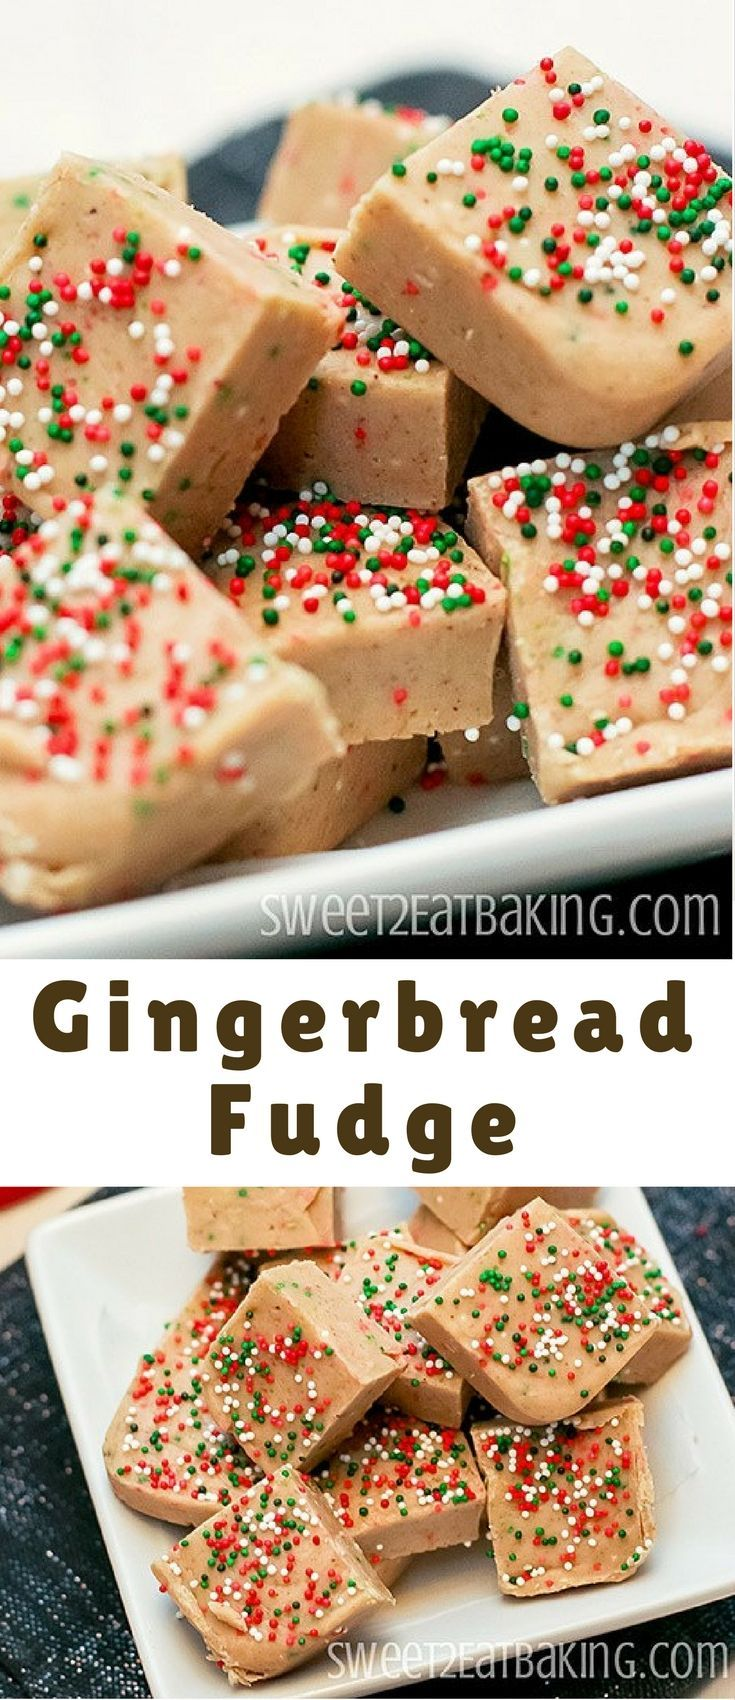 quick and easy gingerbread fudge recipe. Perfectly spiced and festive, this gingerbread fudge is creamy and crunchy thanks to the festive Christmas sprinkles.